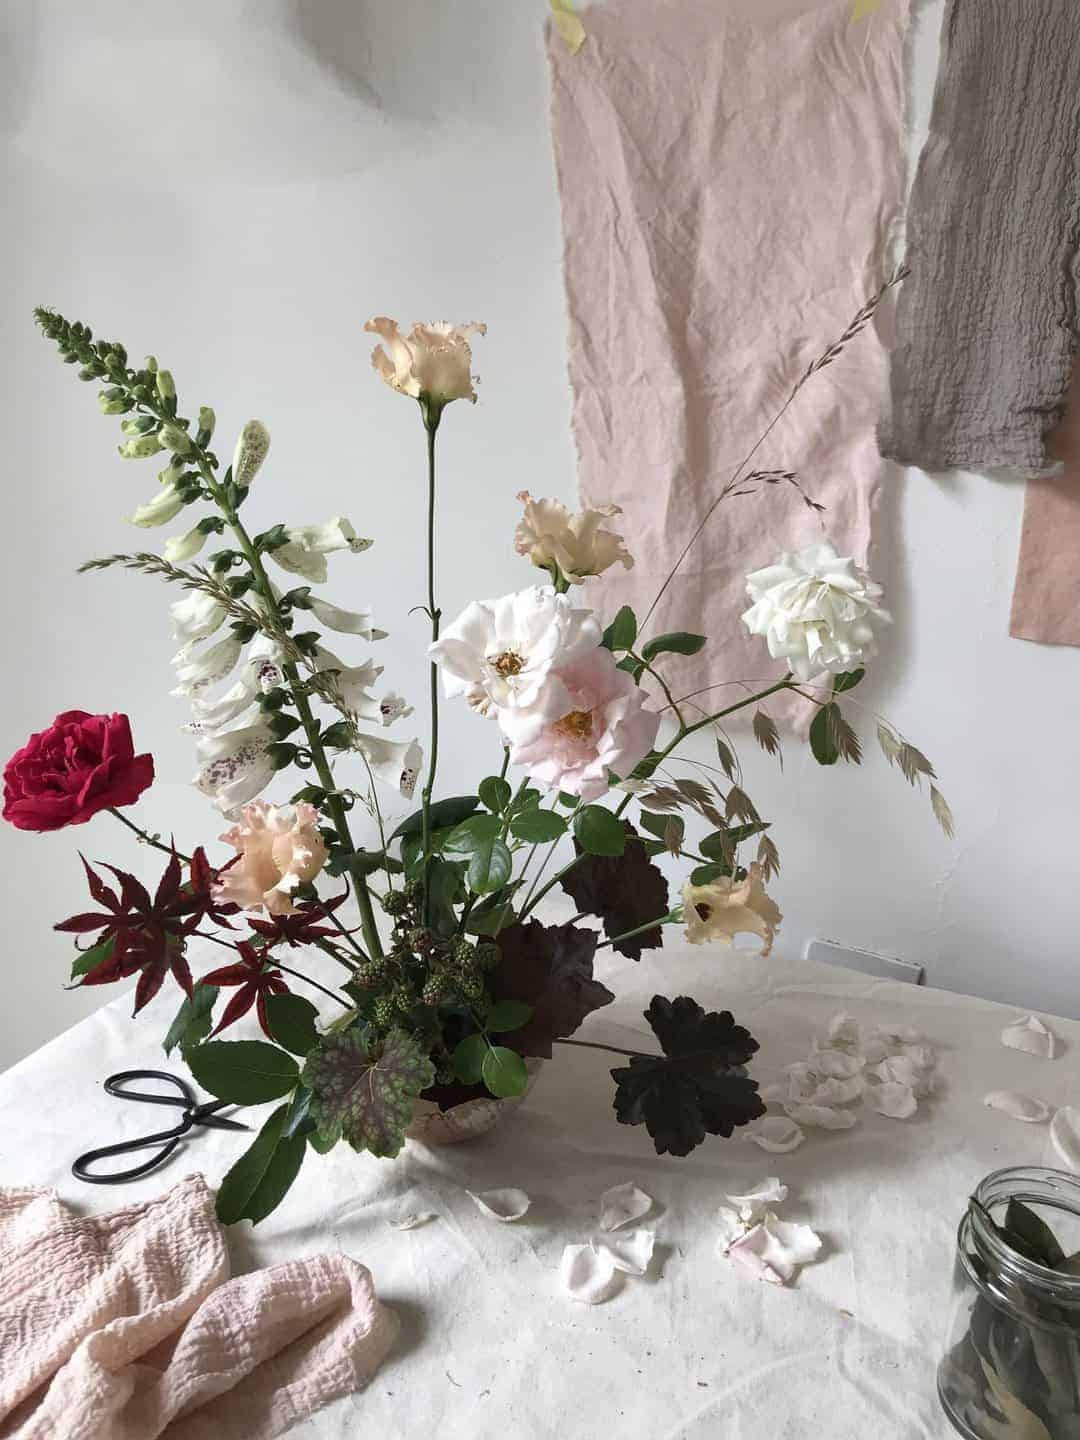 love these early summer spring flowers by worm - roses, foxgloves and foliage loosely arranged to create a contemporary arrangement. Click through for more spring flower arrangement ideas you'll love to try - simple DIY ideas